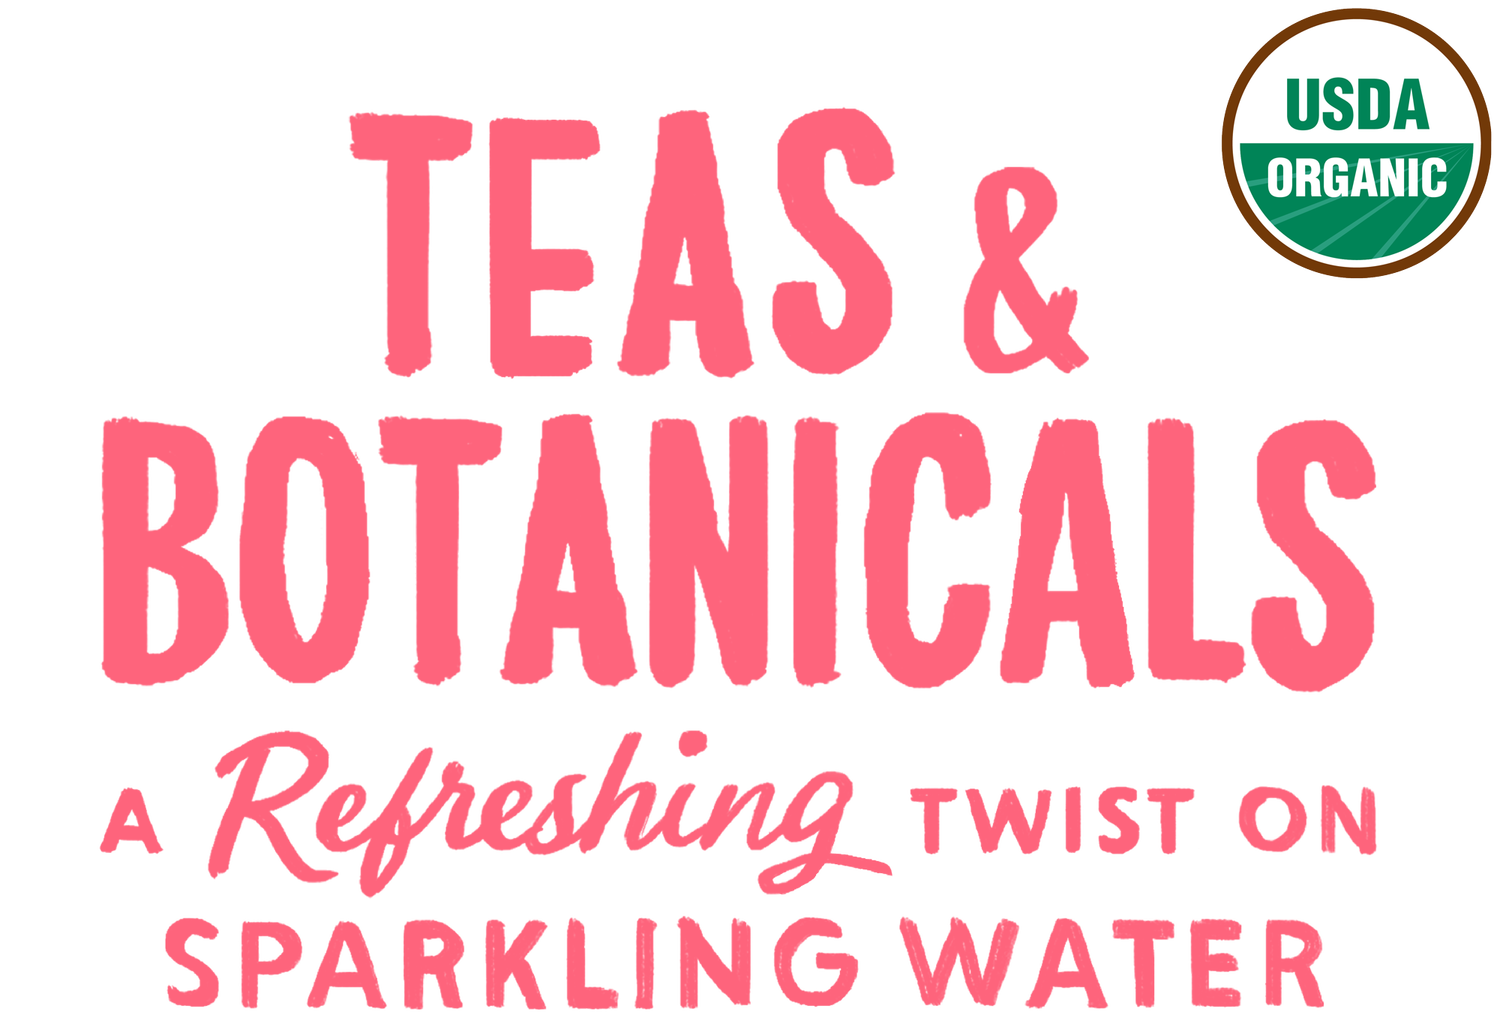 Teas & Botanicals, A Refershing Twist on Sparkling Water